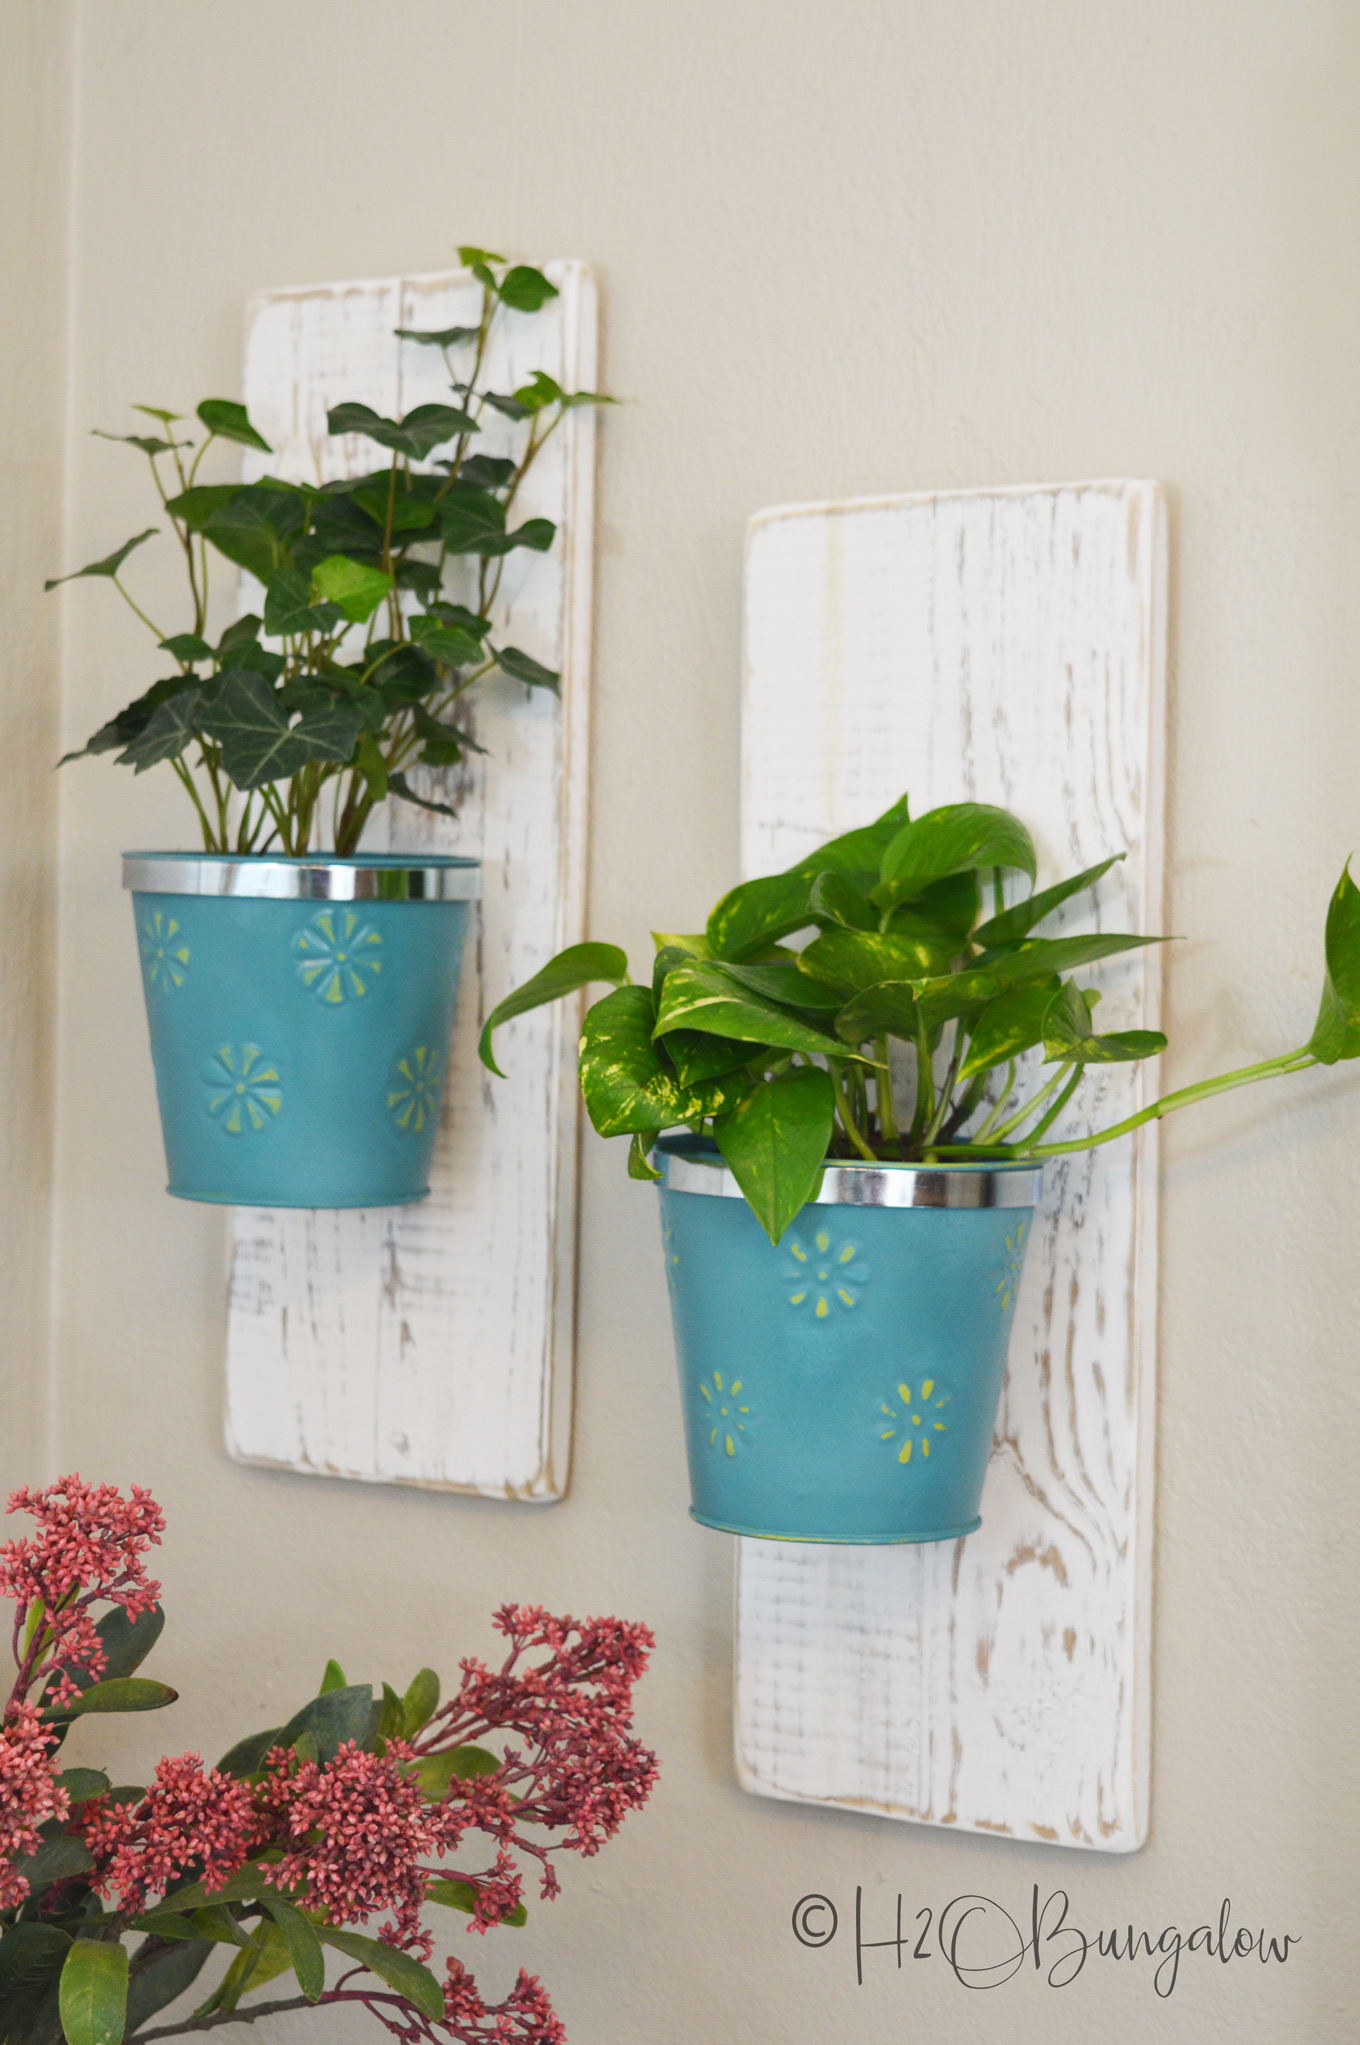 Diy Wall Hanging Planters H2obungalow